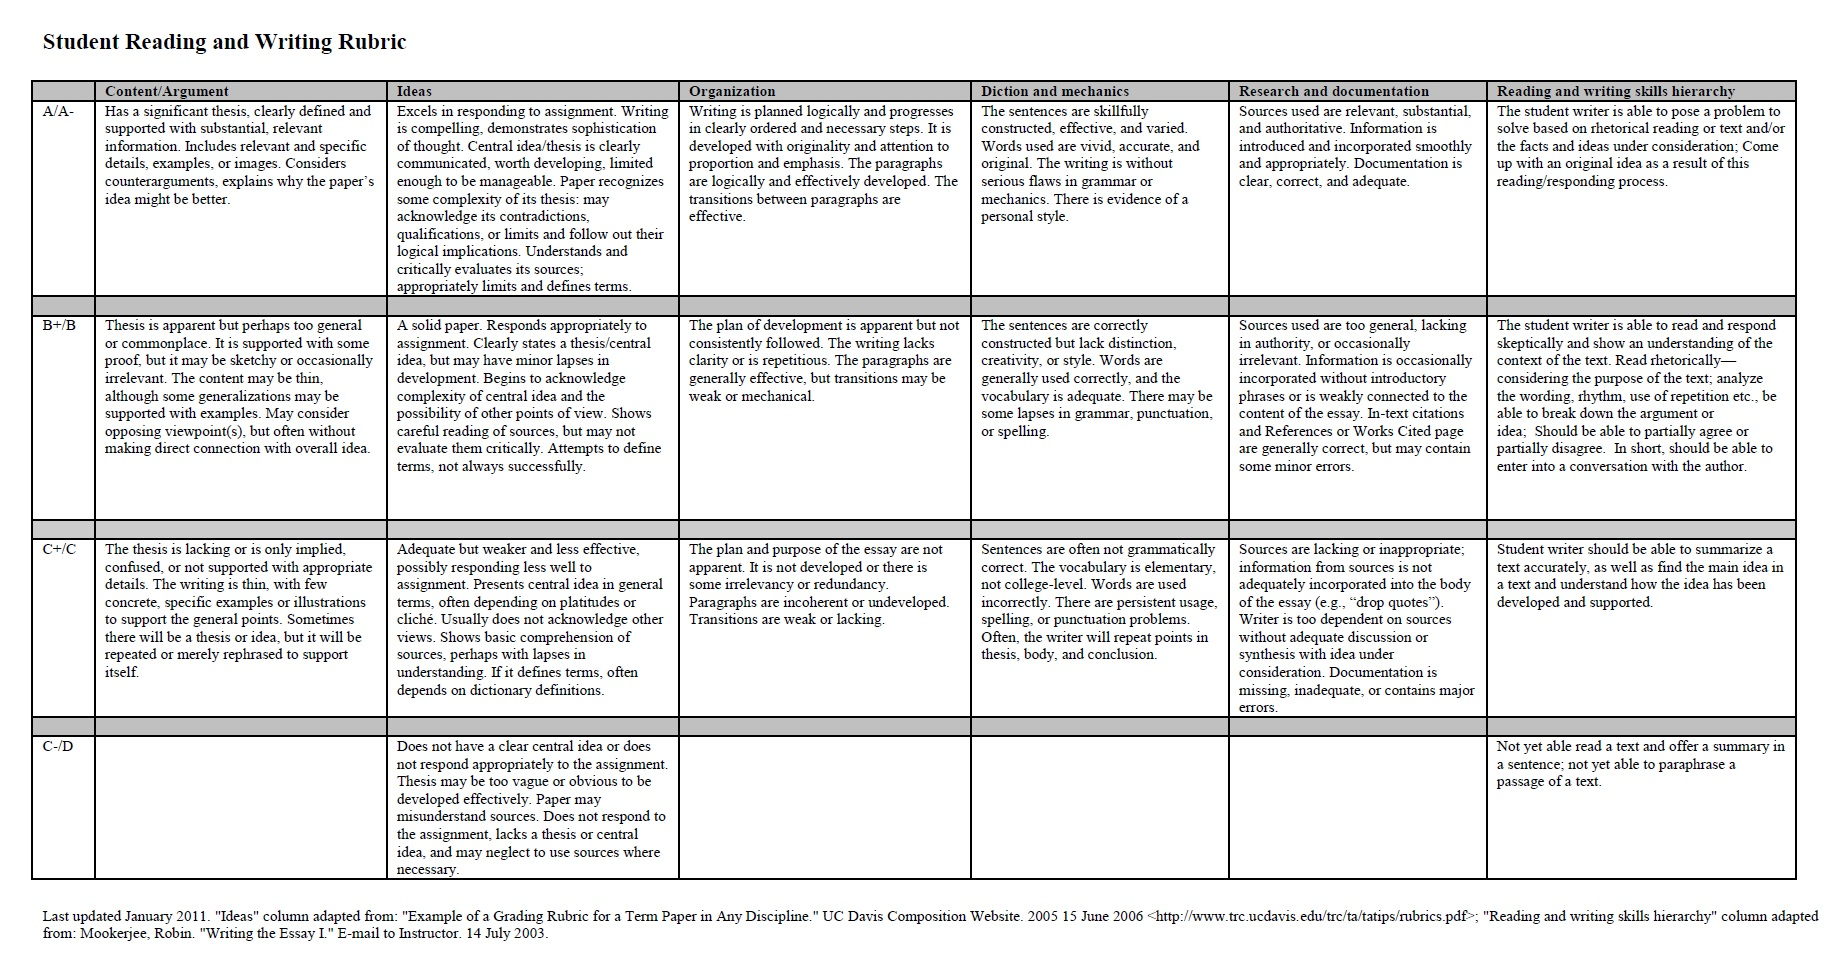 ib extended essay abstract rubric Below are extended essay exemplars in some of the most common subjects submitted to ib they include the ib examiner's comments on each part of the rubric.